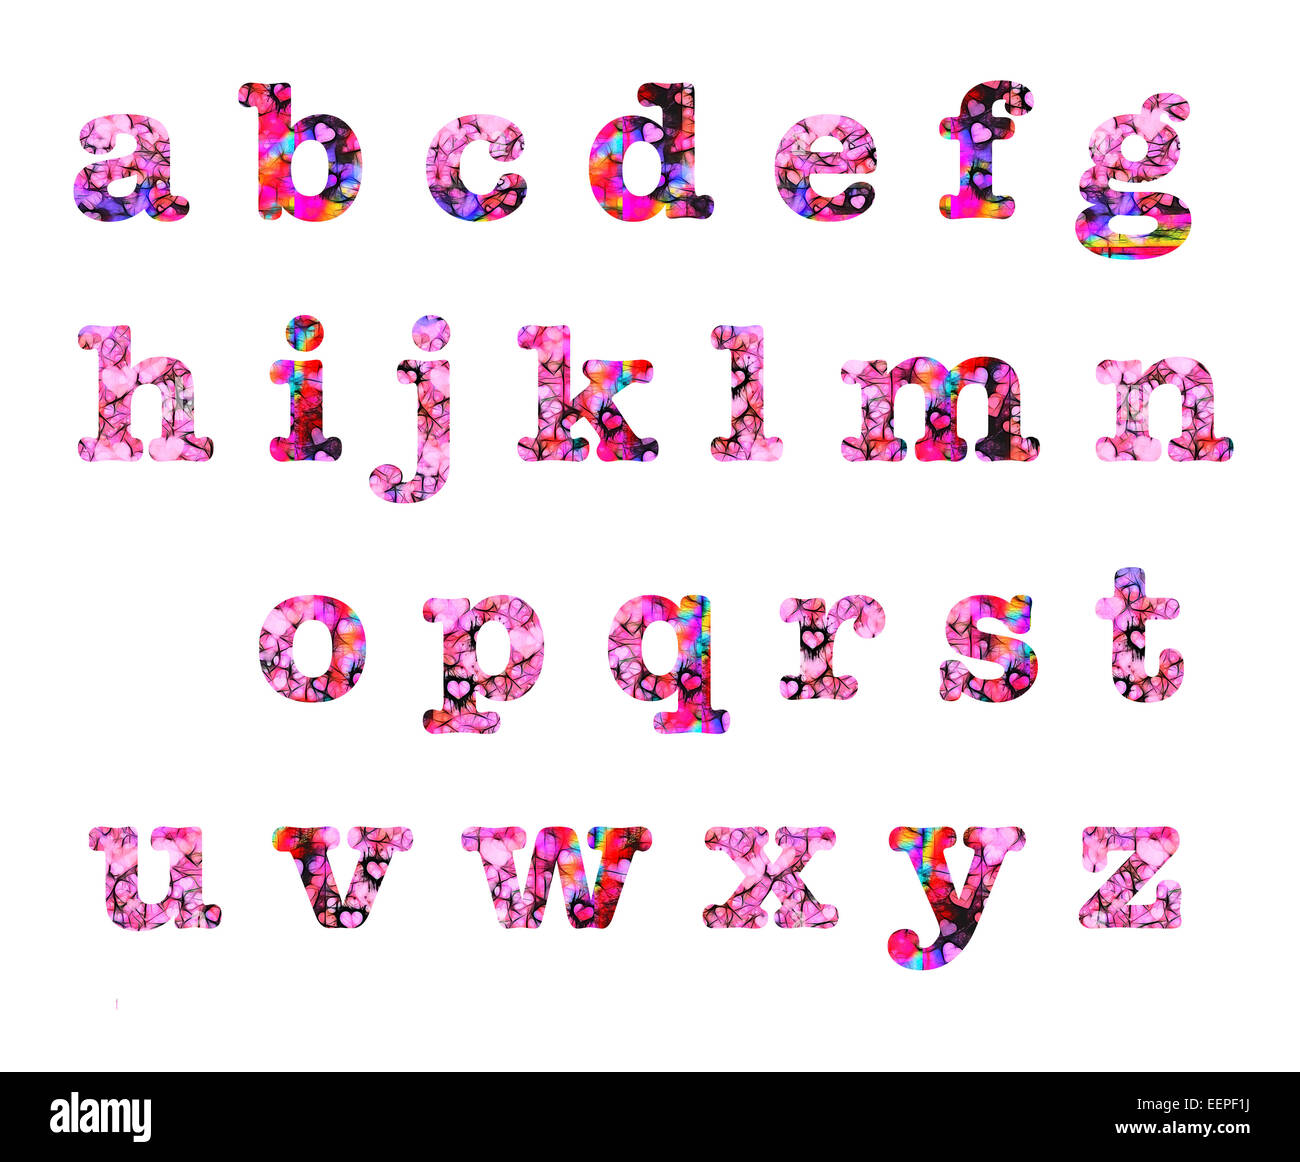 Pink Red Hearts Lower Case Small Letters Alphabet Text